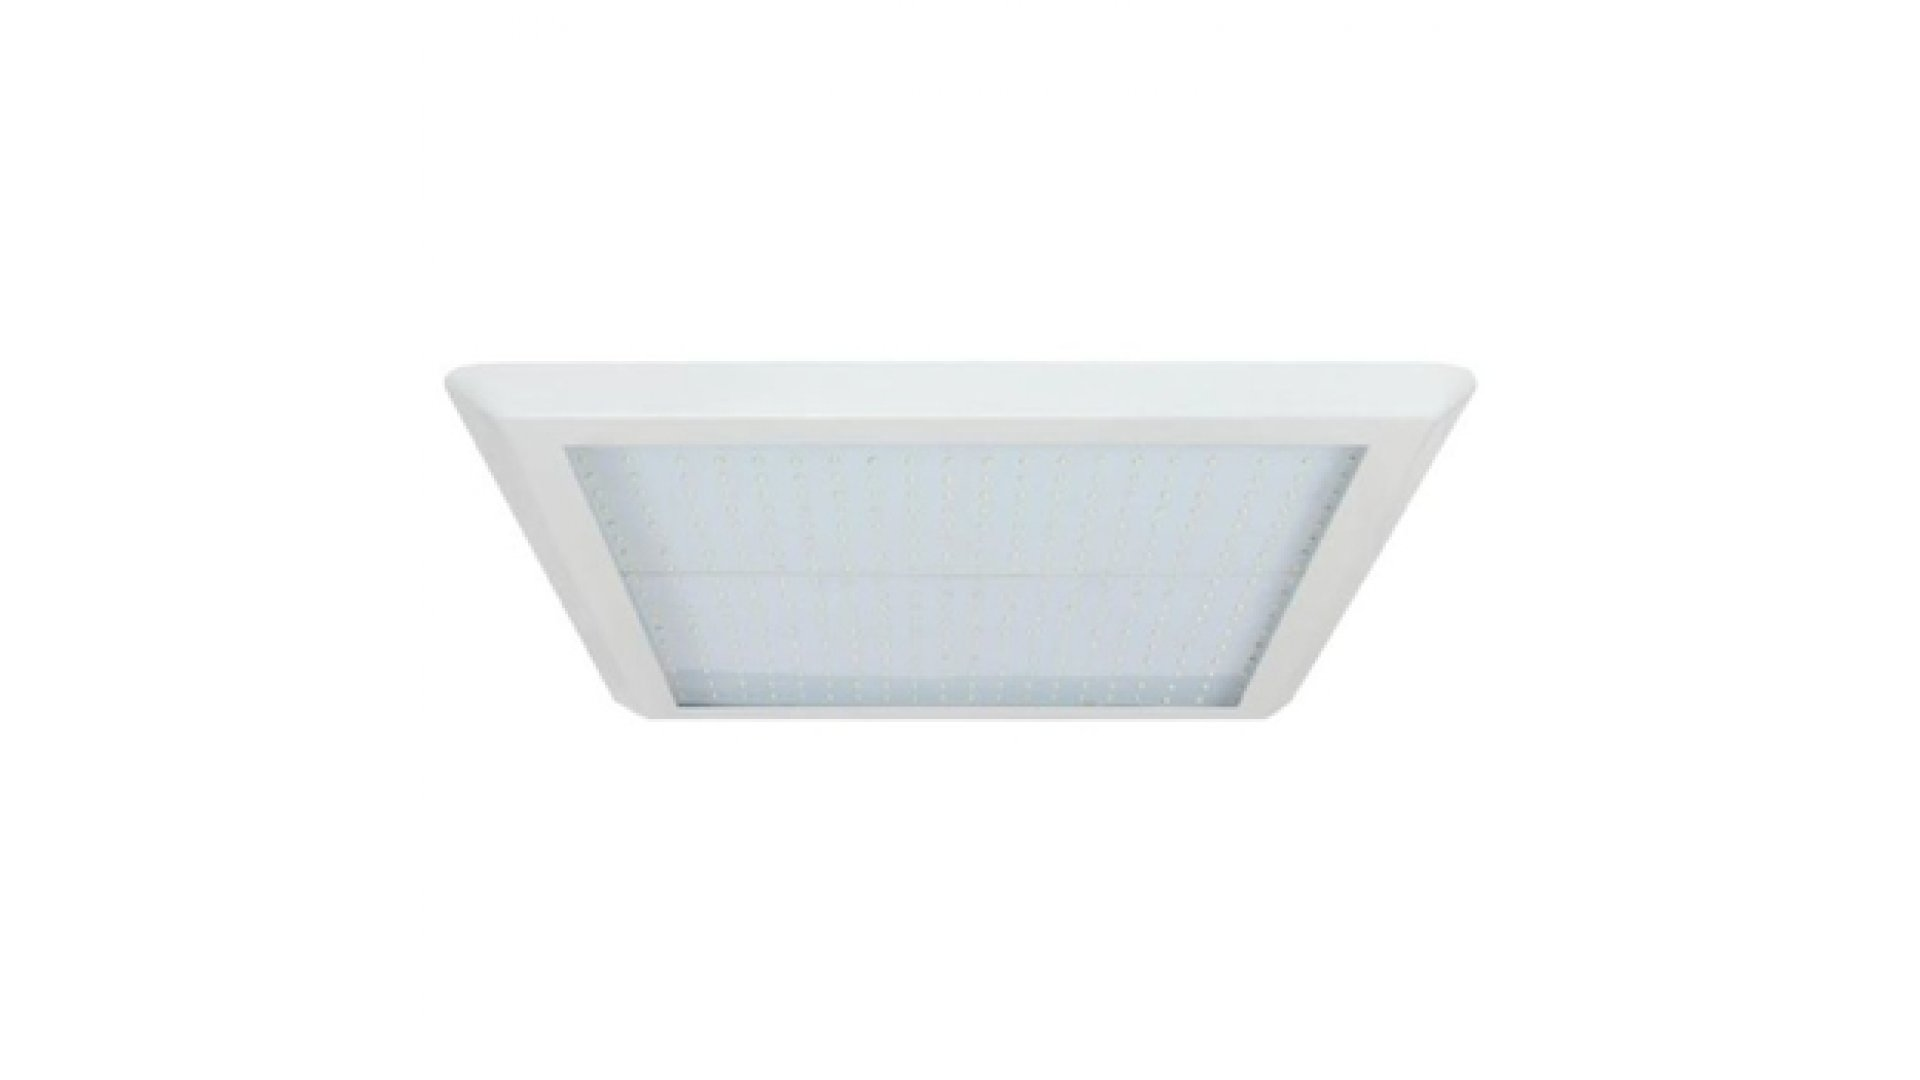 Mxrc94u118led50w Maxlite Recessed Led Canopy Light Fixture 94w 11795 Lumens 5000k Dlc Rated